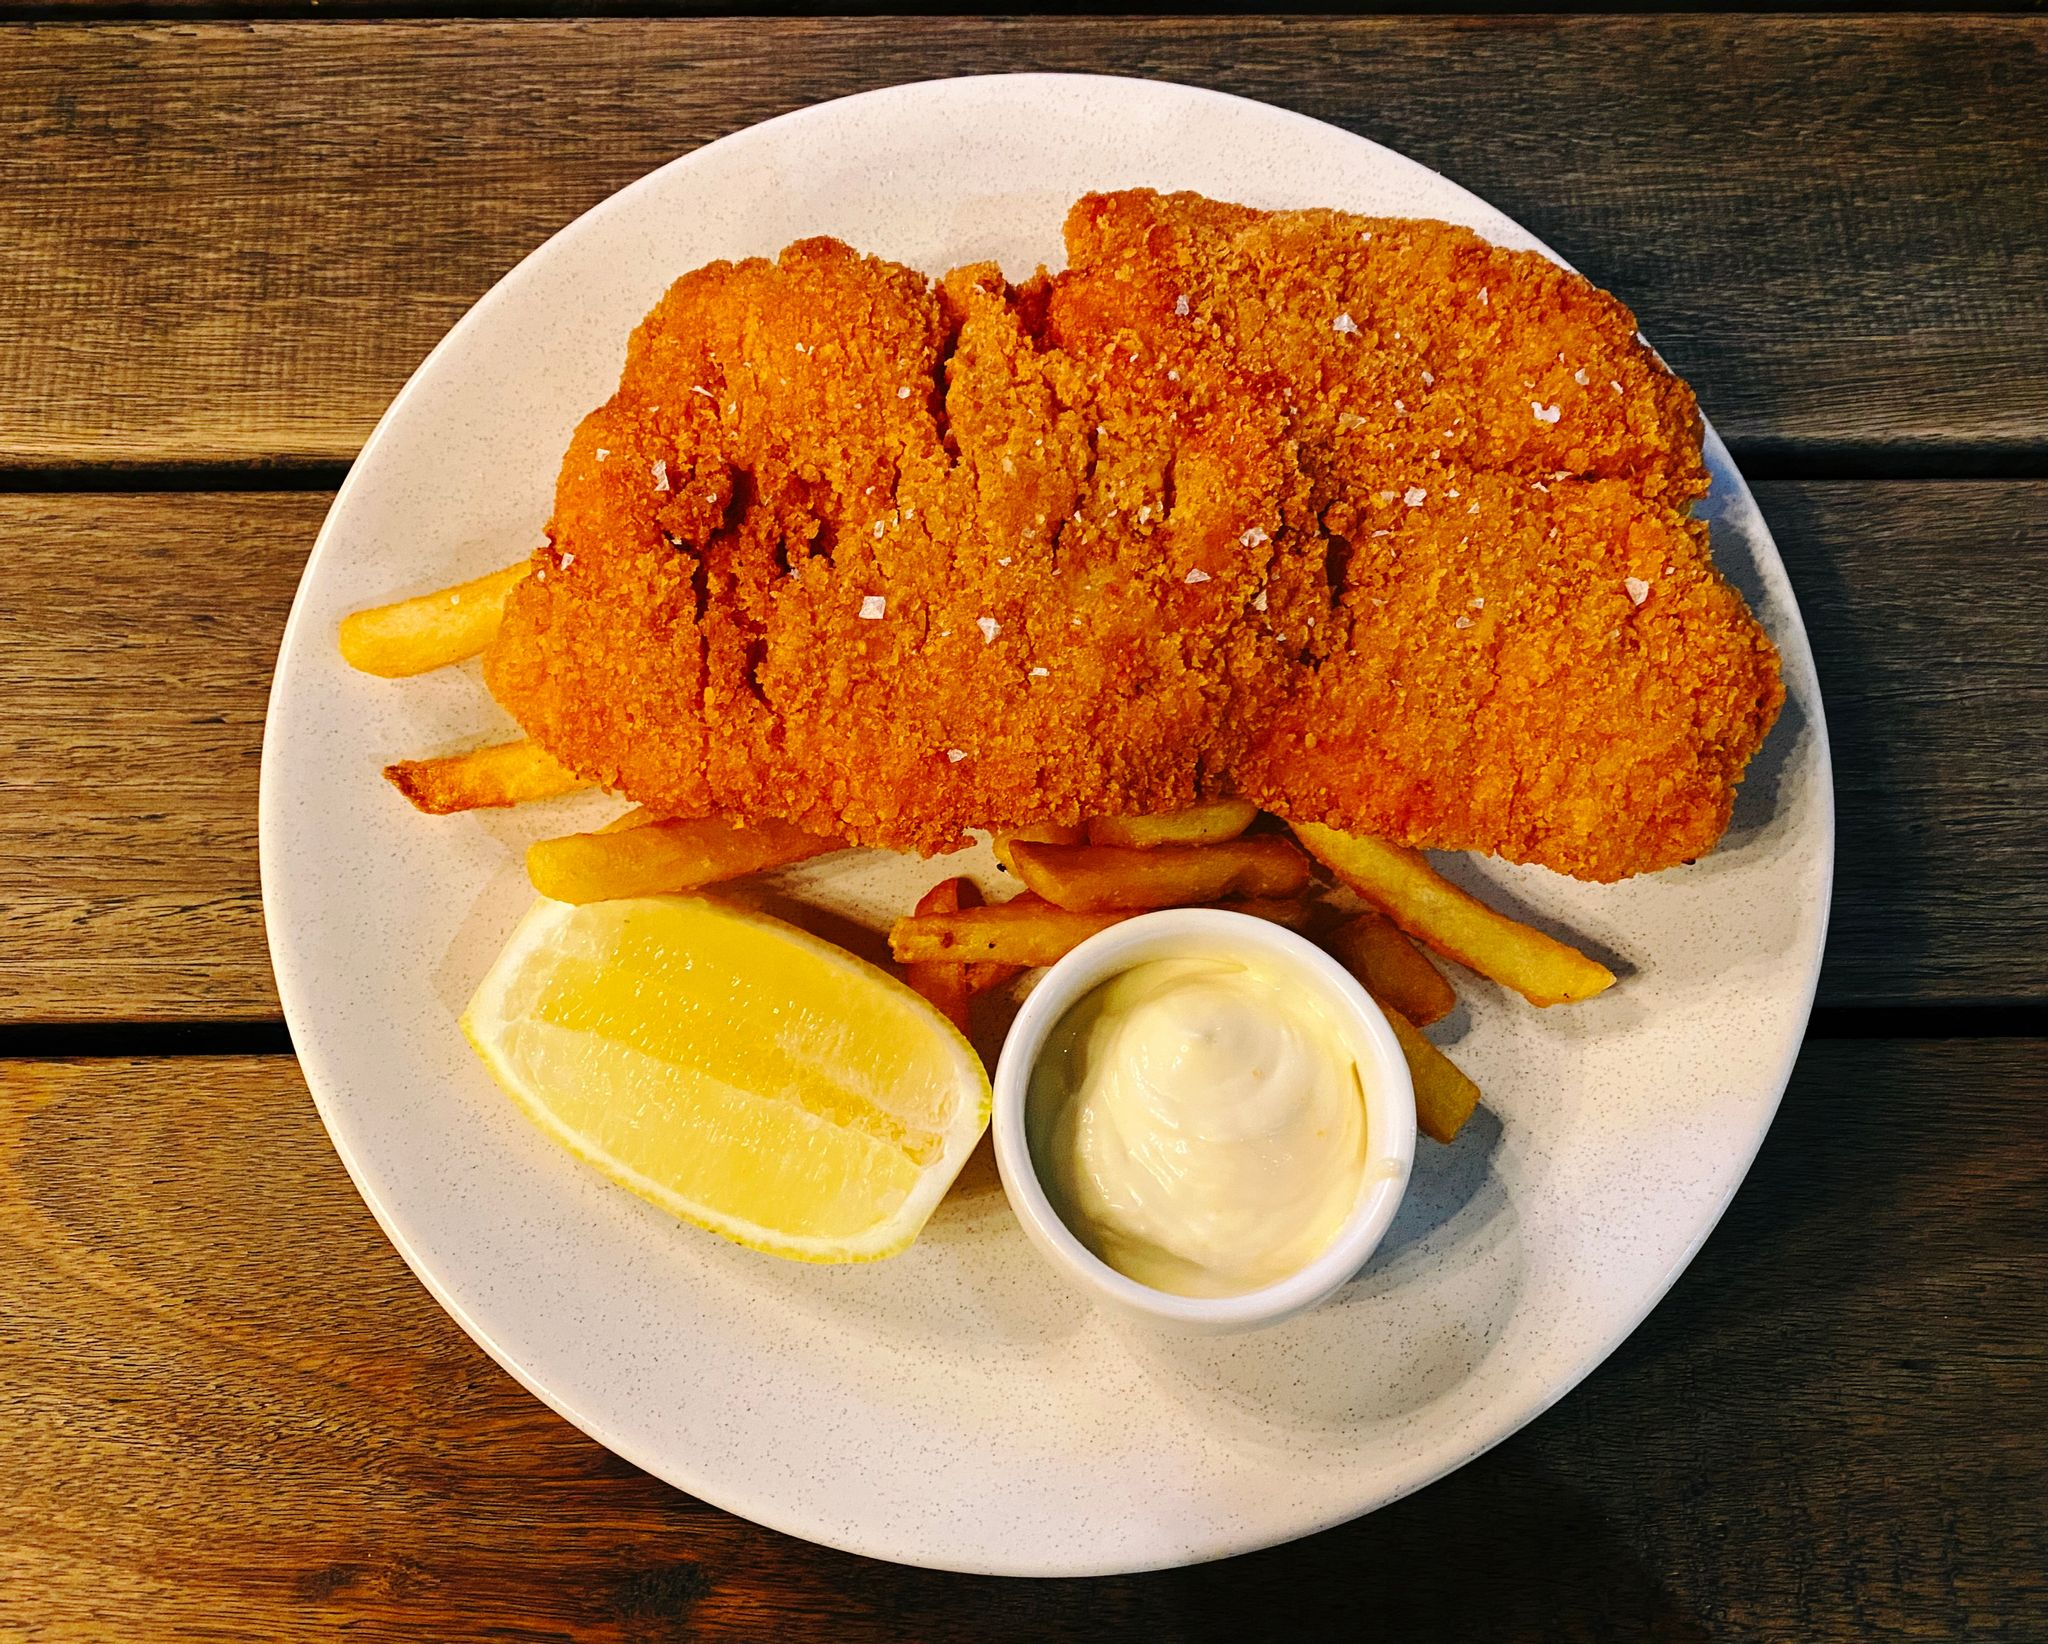 A photo of a schnitzel sitting on top of chips, with a slice of lemon and a small bowl of aioli.